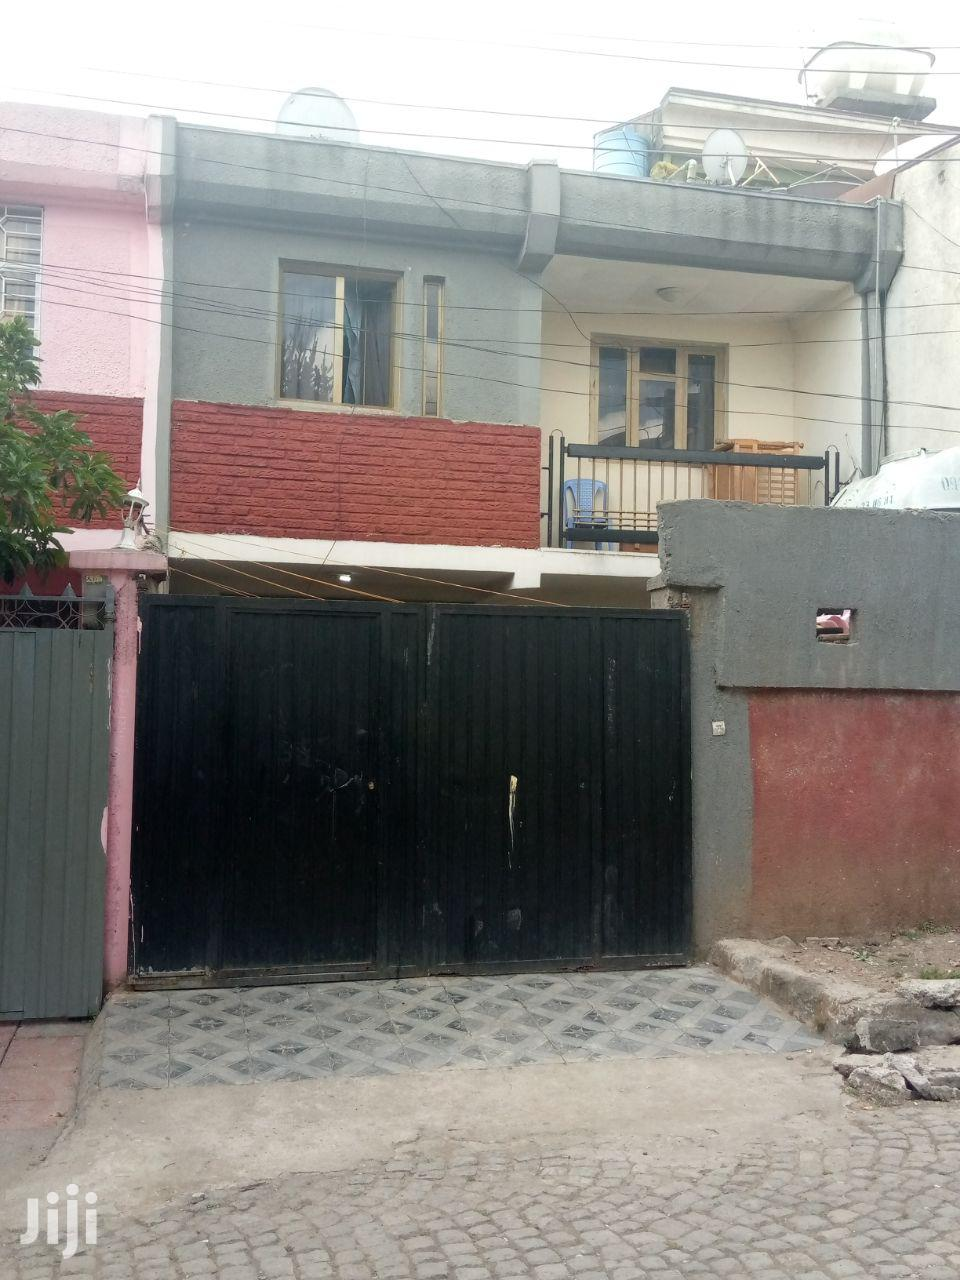 3bdrm House in Bole for Sale